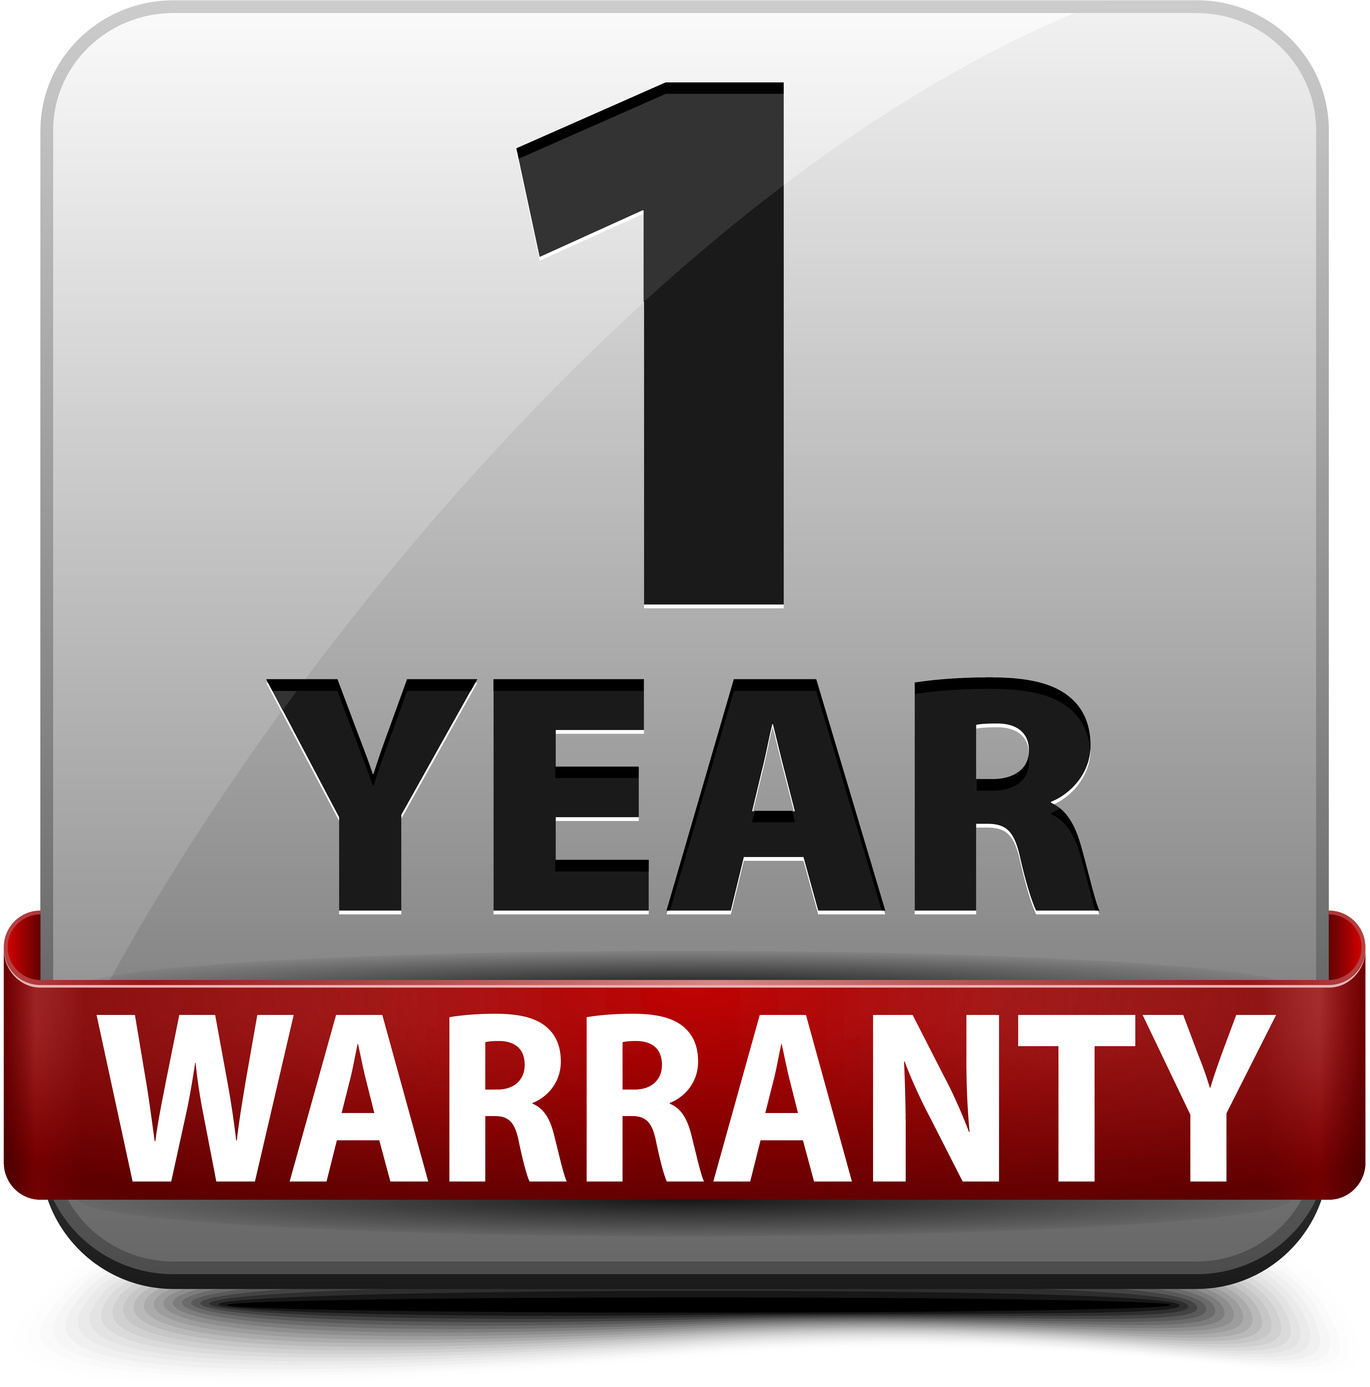 In most cases, a one-year warranty is ideal for a moisture meter product.